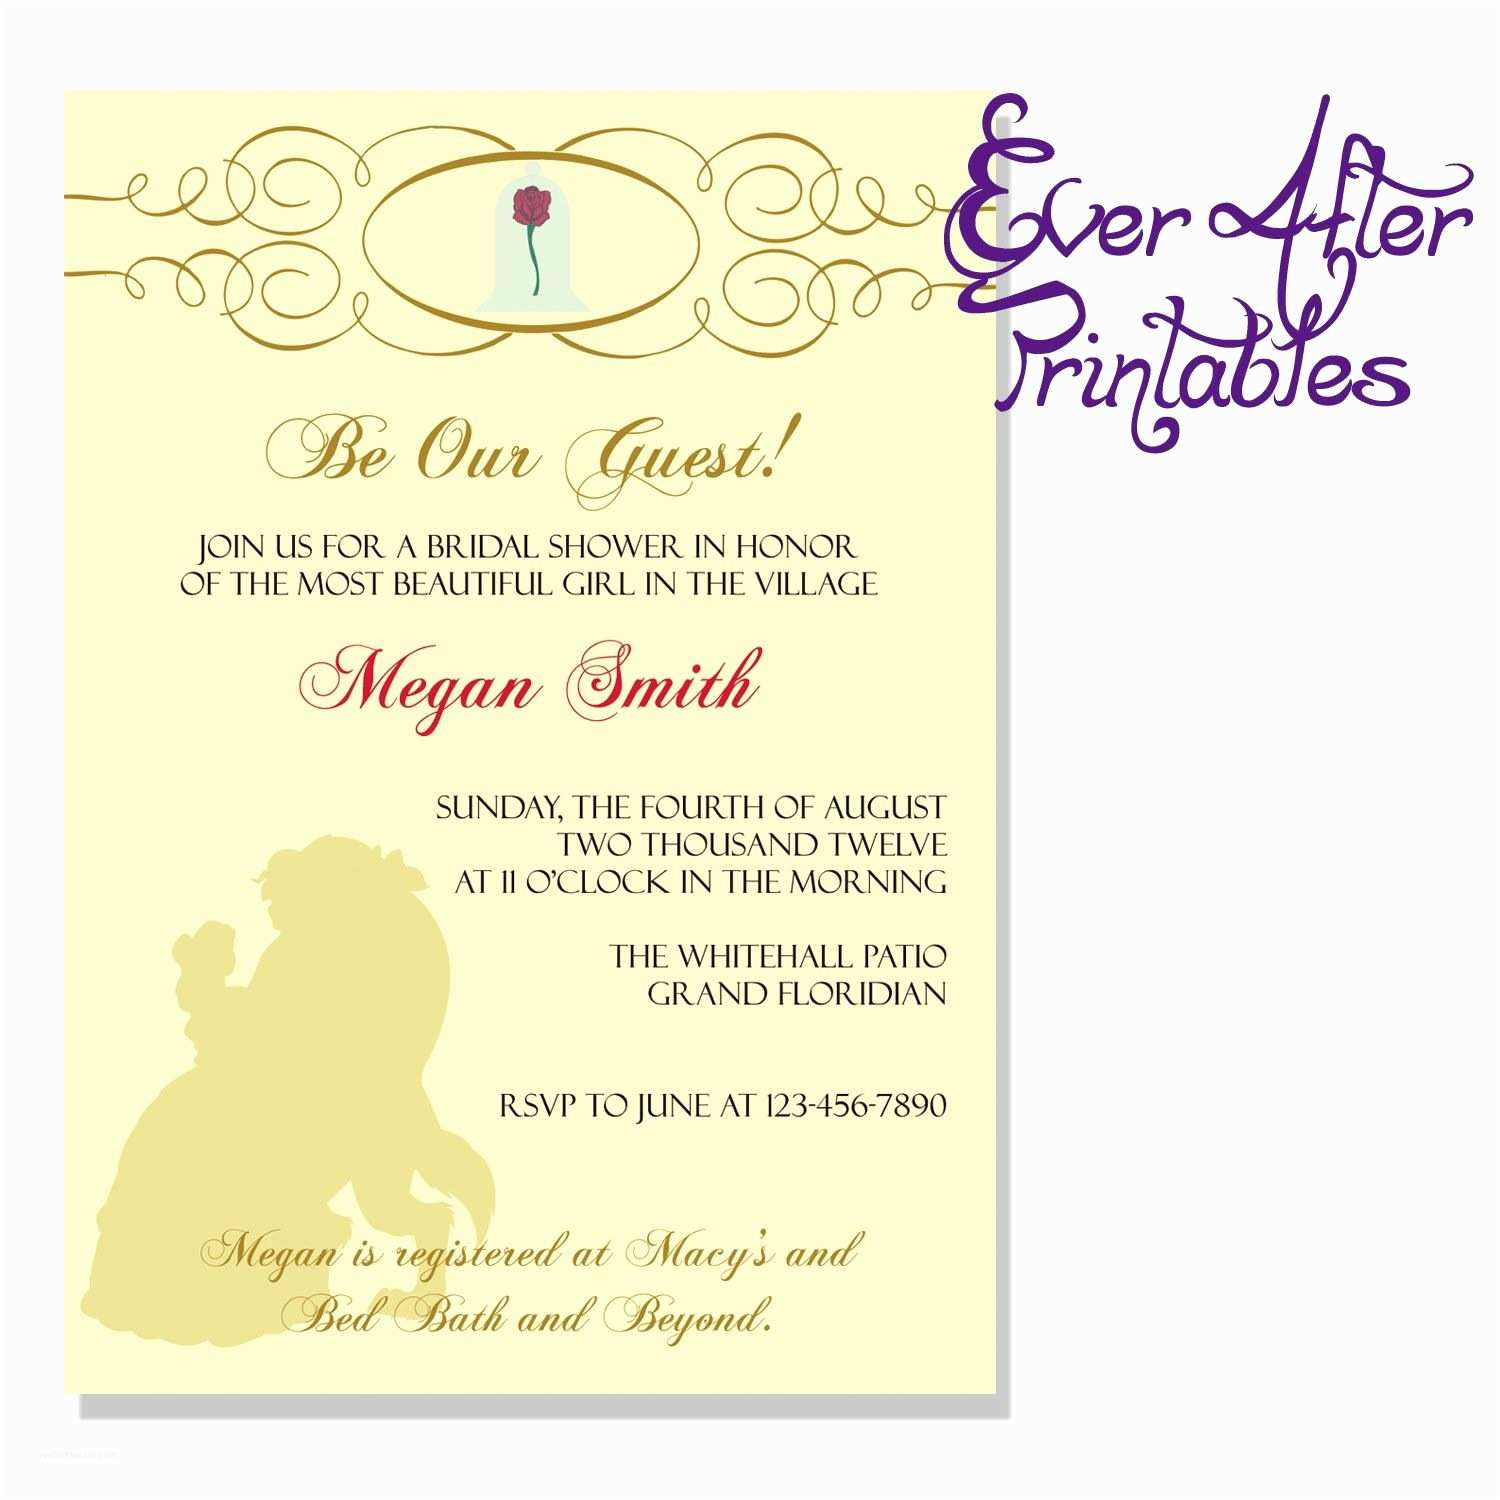 Beauty and the Beast Wedding Shower Invitations Beauty and the Beast Invite